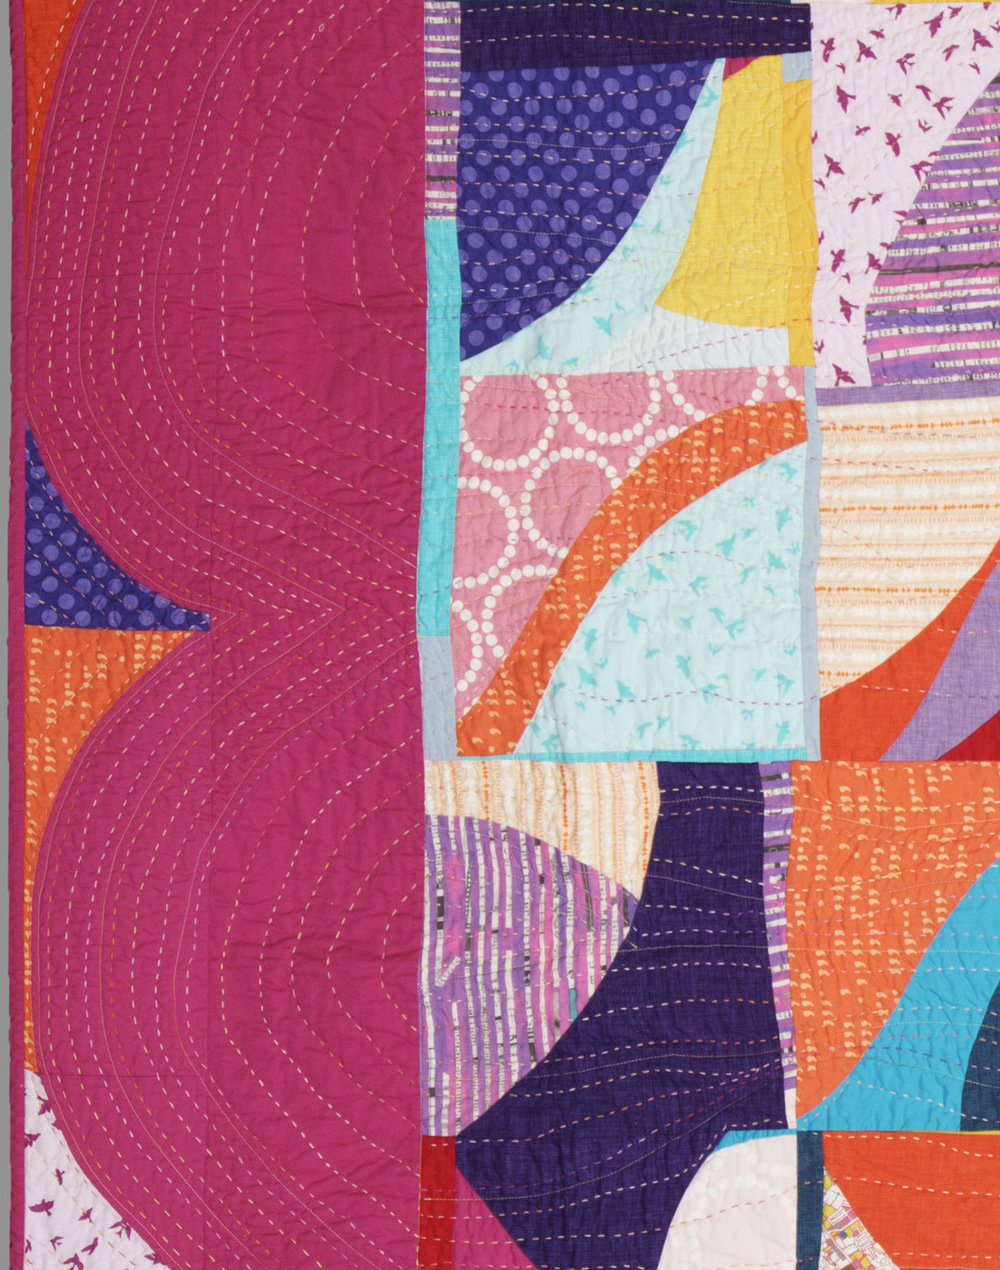 hand-quilting detail